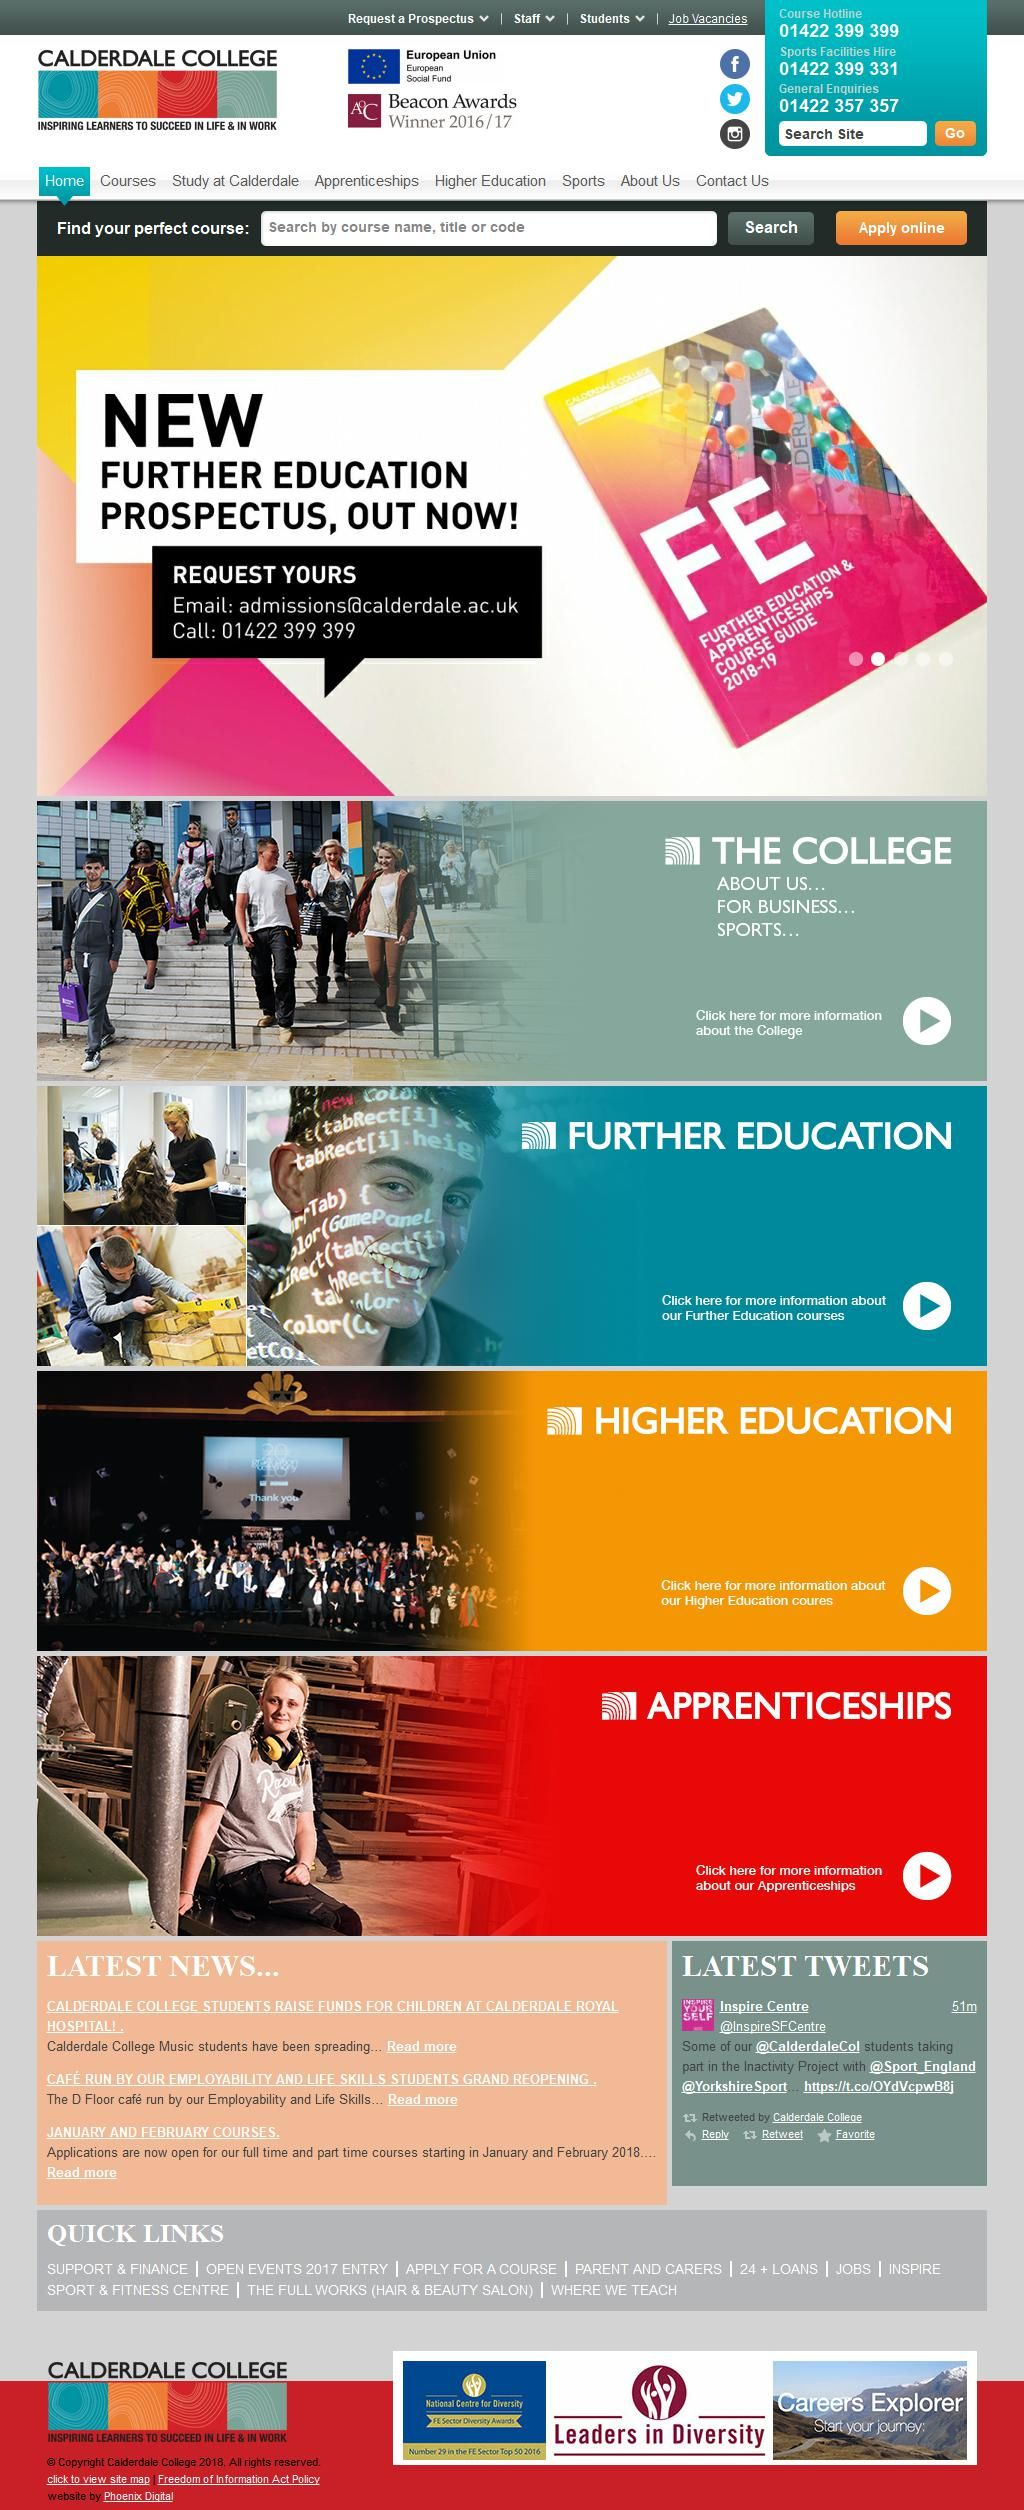 Calderdale College Schools & Colleges Further Education